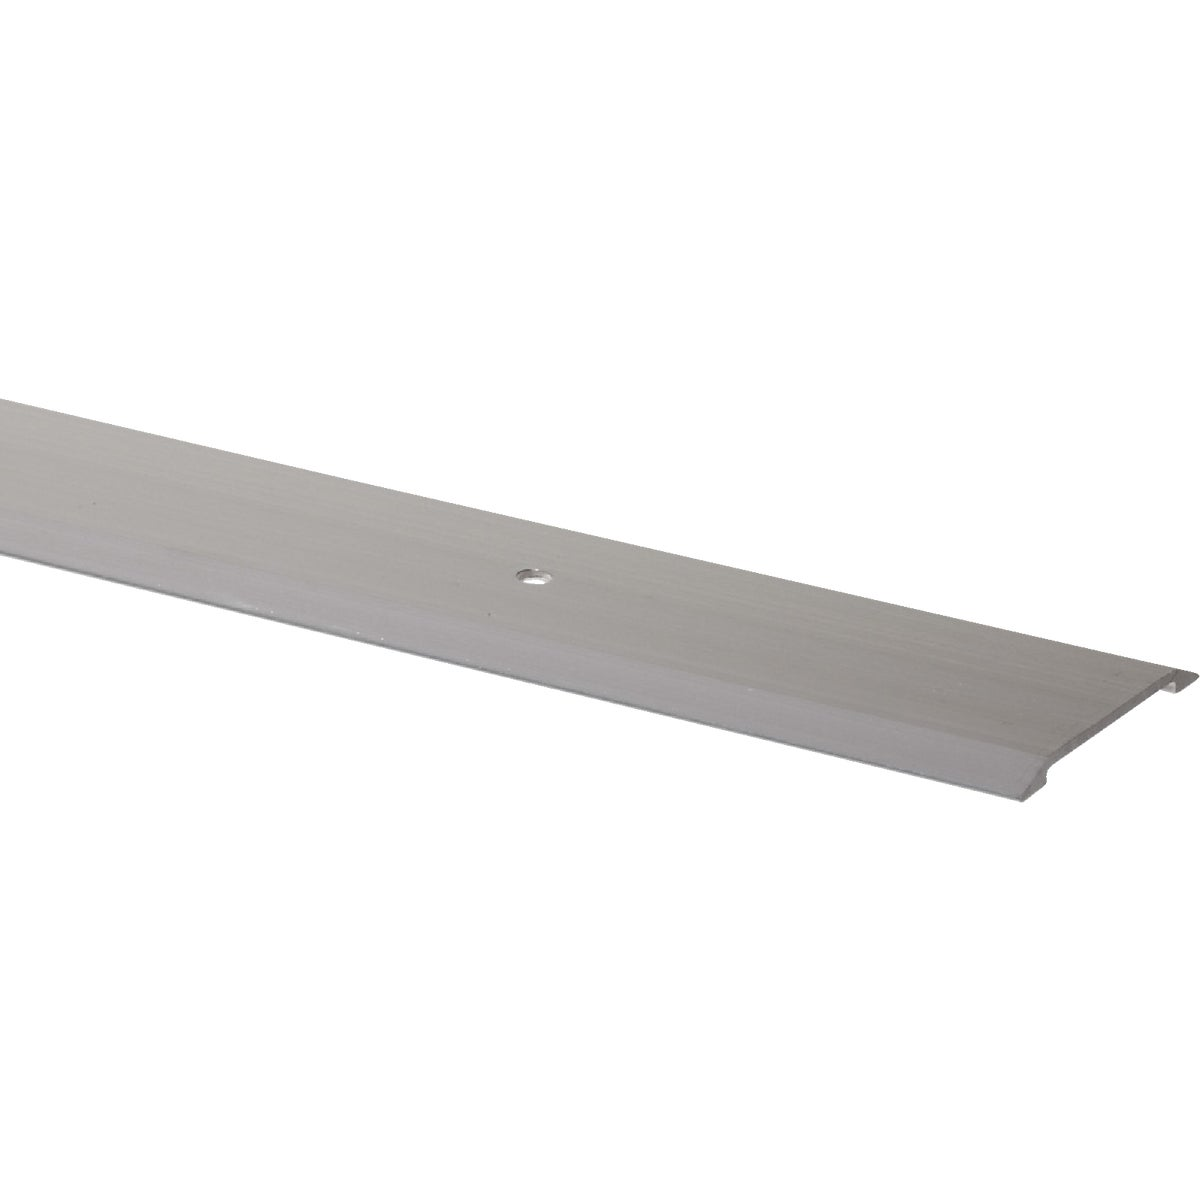 "36""SLVR SADDLE THRESHOLD - ST175DI by Thermwell Prods Co"